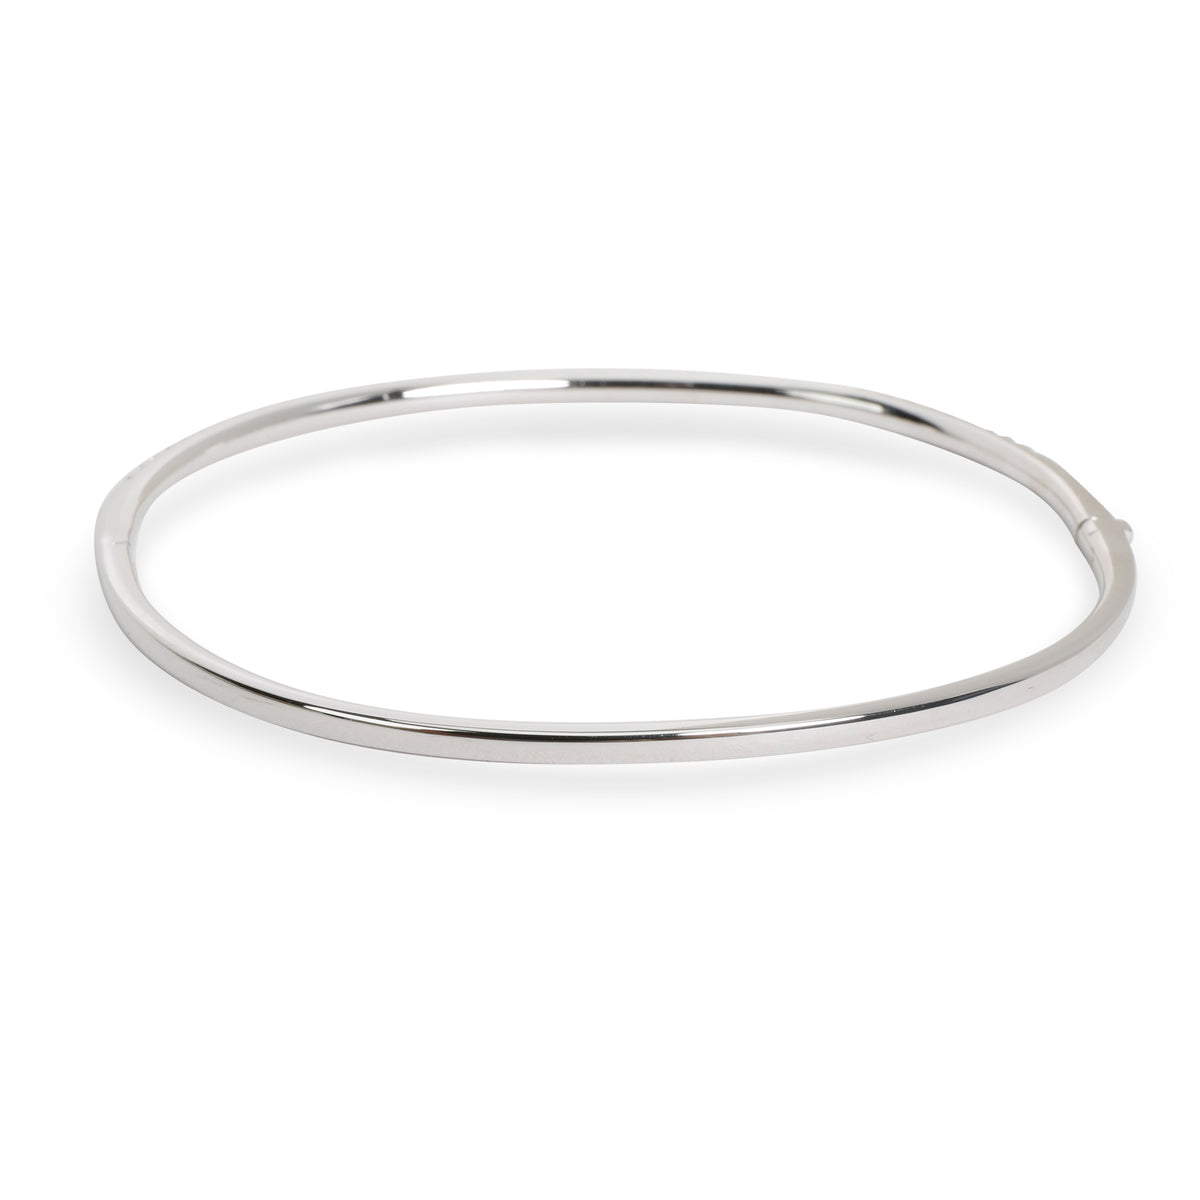 Nicole Rose Halfway Diamond Oval Bangle in 18K White Gold 0.75 CTW